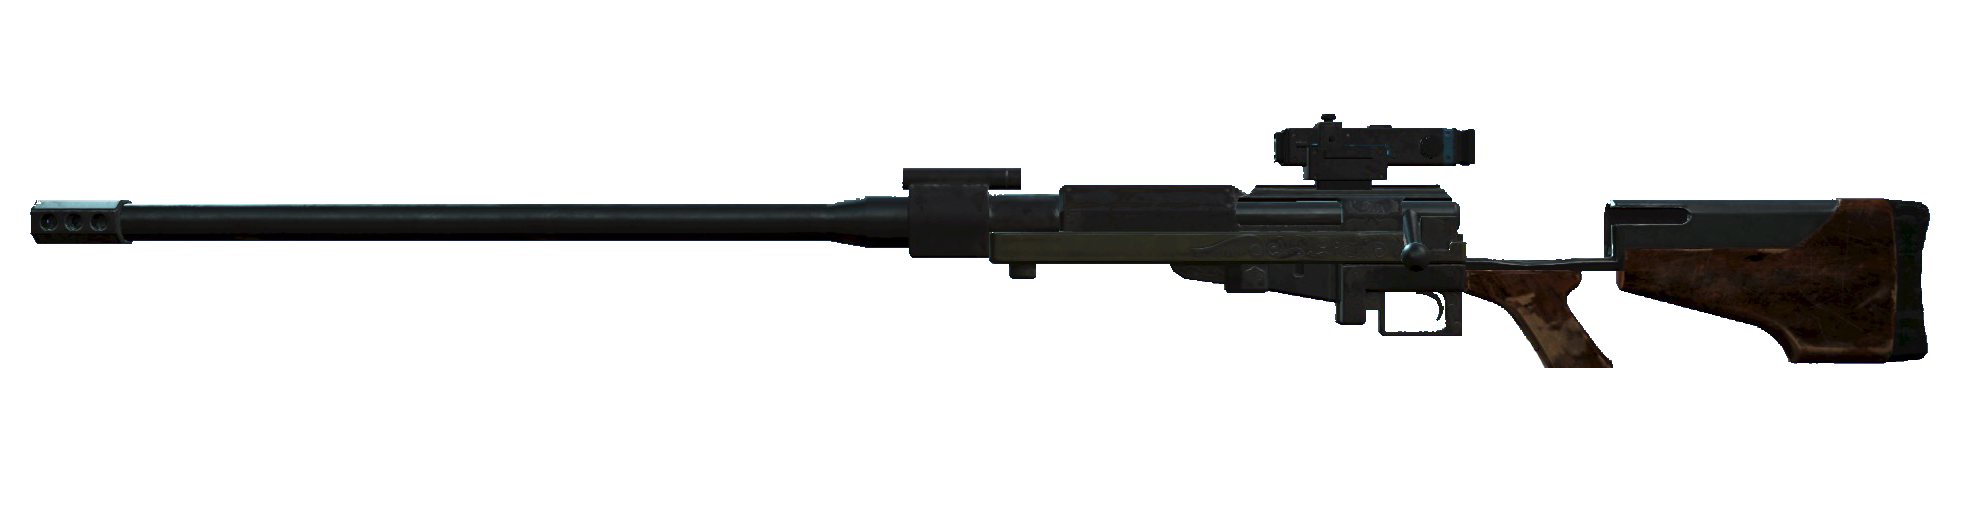 Anti Materiel Rifle anti-materiel rifle (creation club) | fallout wiki | fandom